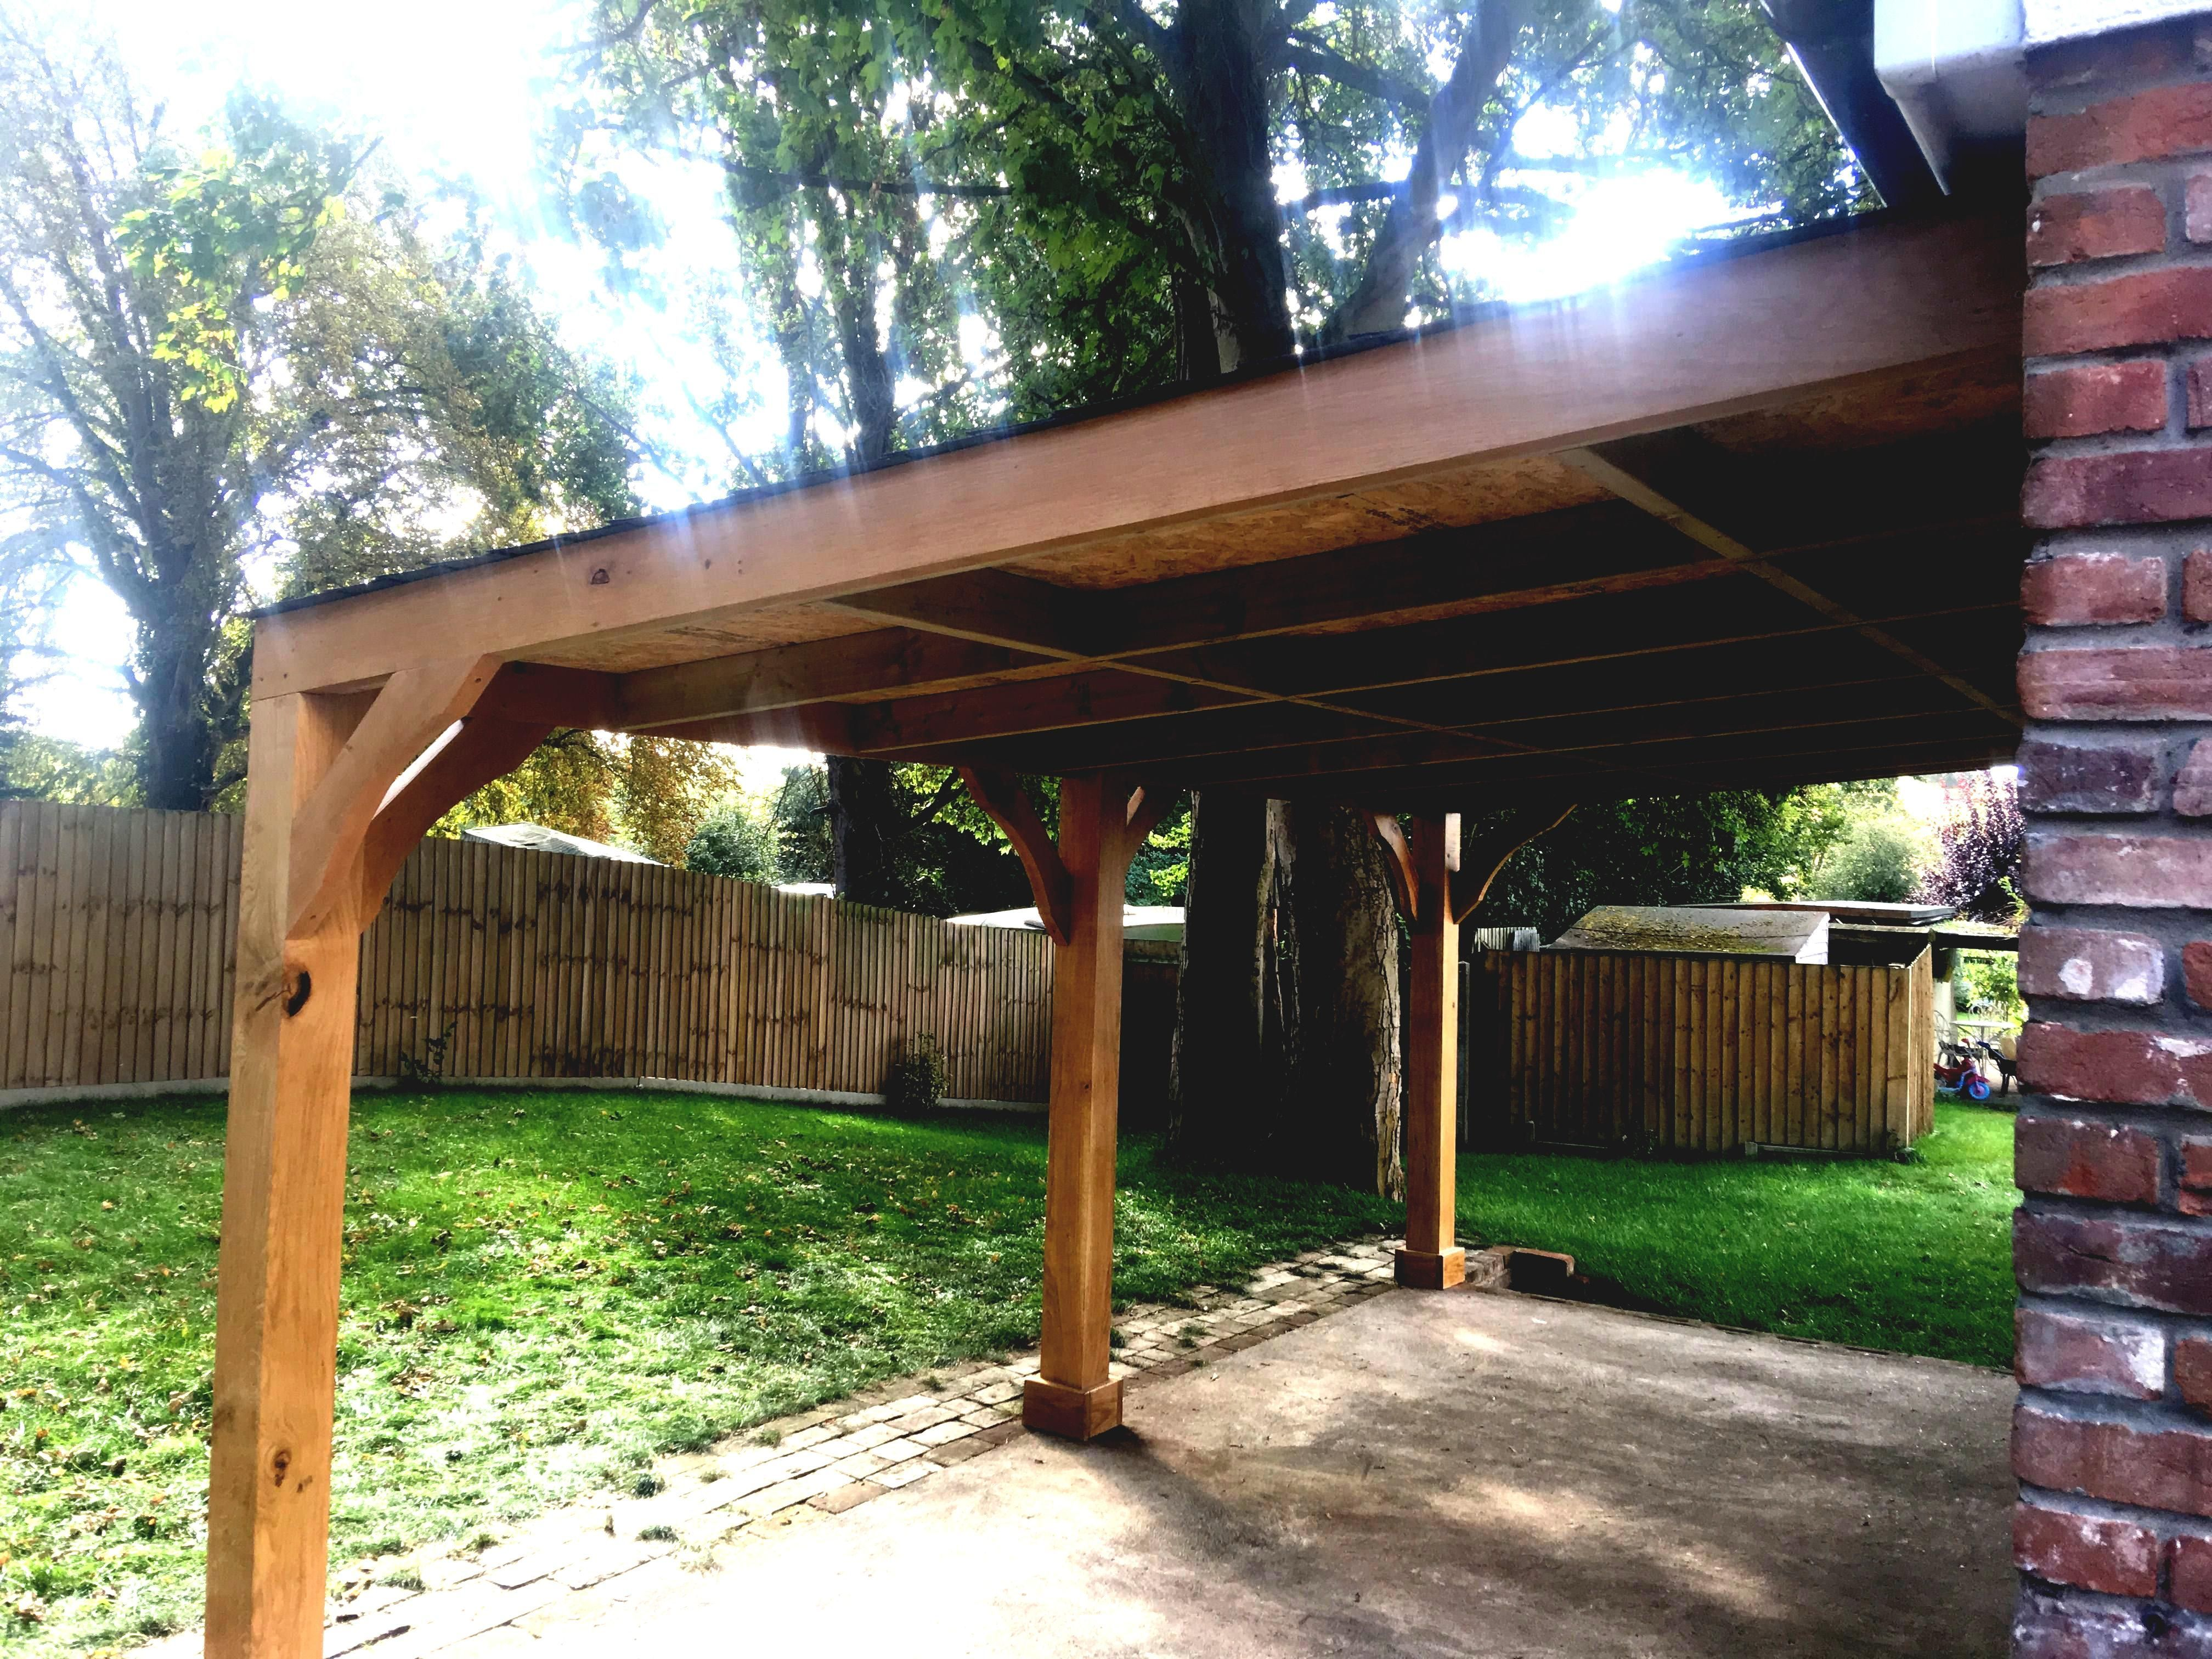 Cheap Carports Carport Garage Portable Carport Diy Carport Palram Carport Wood Carport House Carport Cheap Carpor Building A Carport Diy Carport Carport